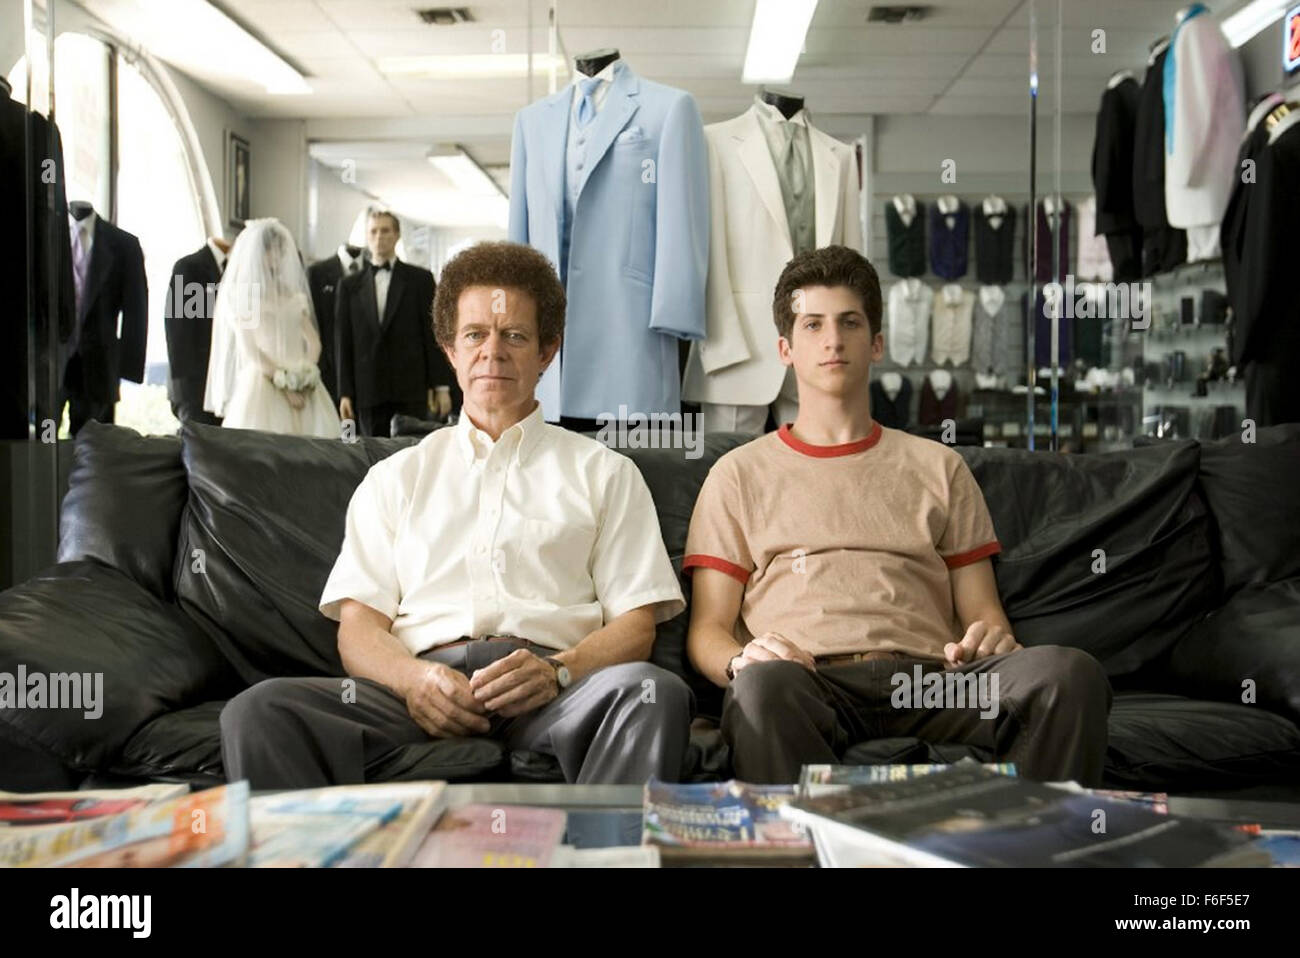 BART GOT A ROOM 2008 Basra Entertainment film with William Macy at left and Steven Kaplan - Stock Image